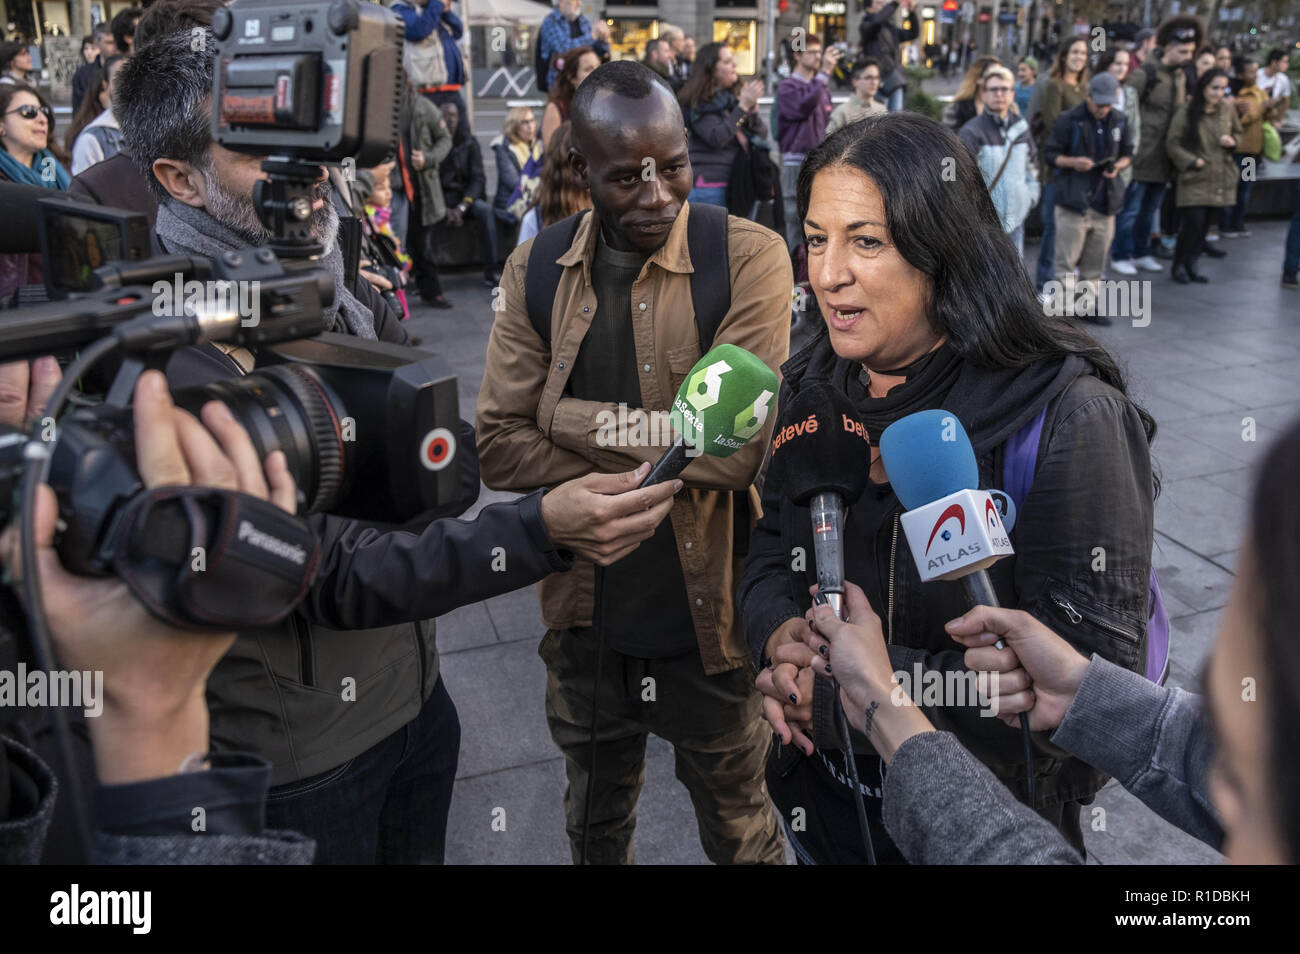 Barcelona, Catalonia, Spain. 11th Nov, 2018. The spokespersons for the demonstration against institutional racism is seen at a press conference during the protest.A new manifestation against institutional racism has crossed the streets of the center of Barcelona. Accompanied by social organizations and the Trade Union of street vendors, more than 500 people have claimed to end racism in Barcelona and have denounced police identifications according to the color of their skin. Credit: Paco Freire/SOPA Images/ZUMA Wire/Alamy Live News - Stock Image